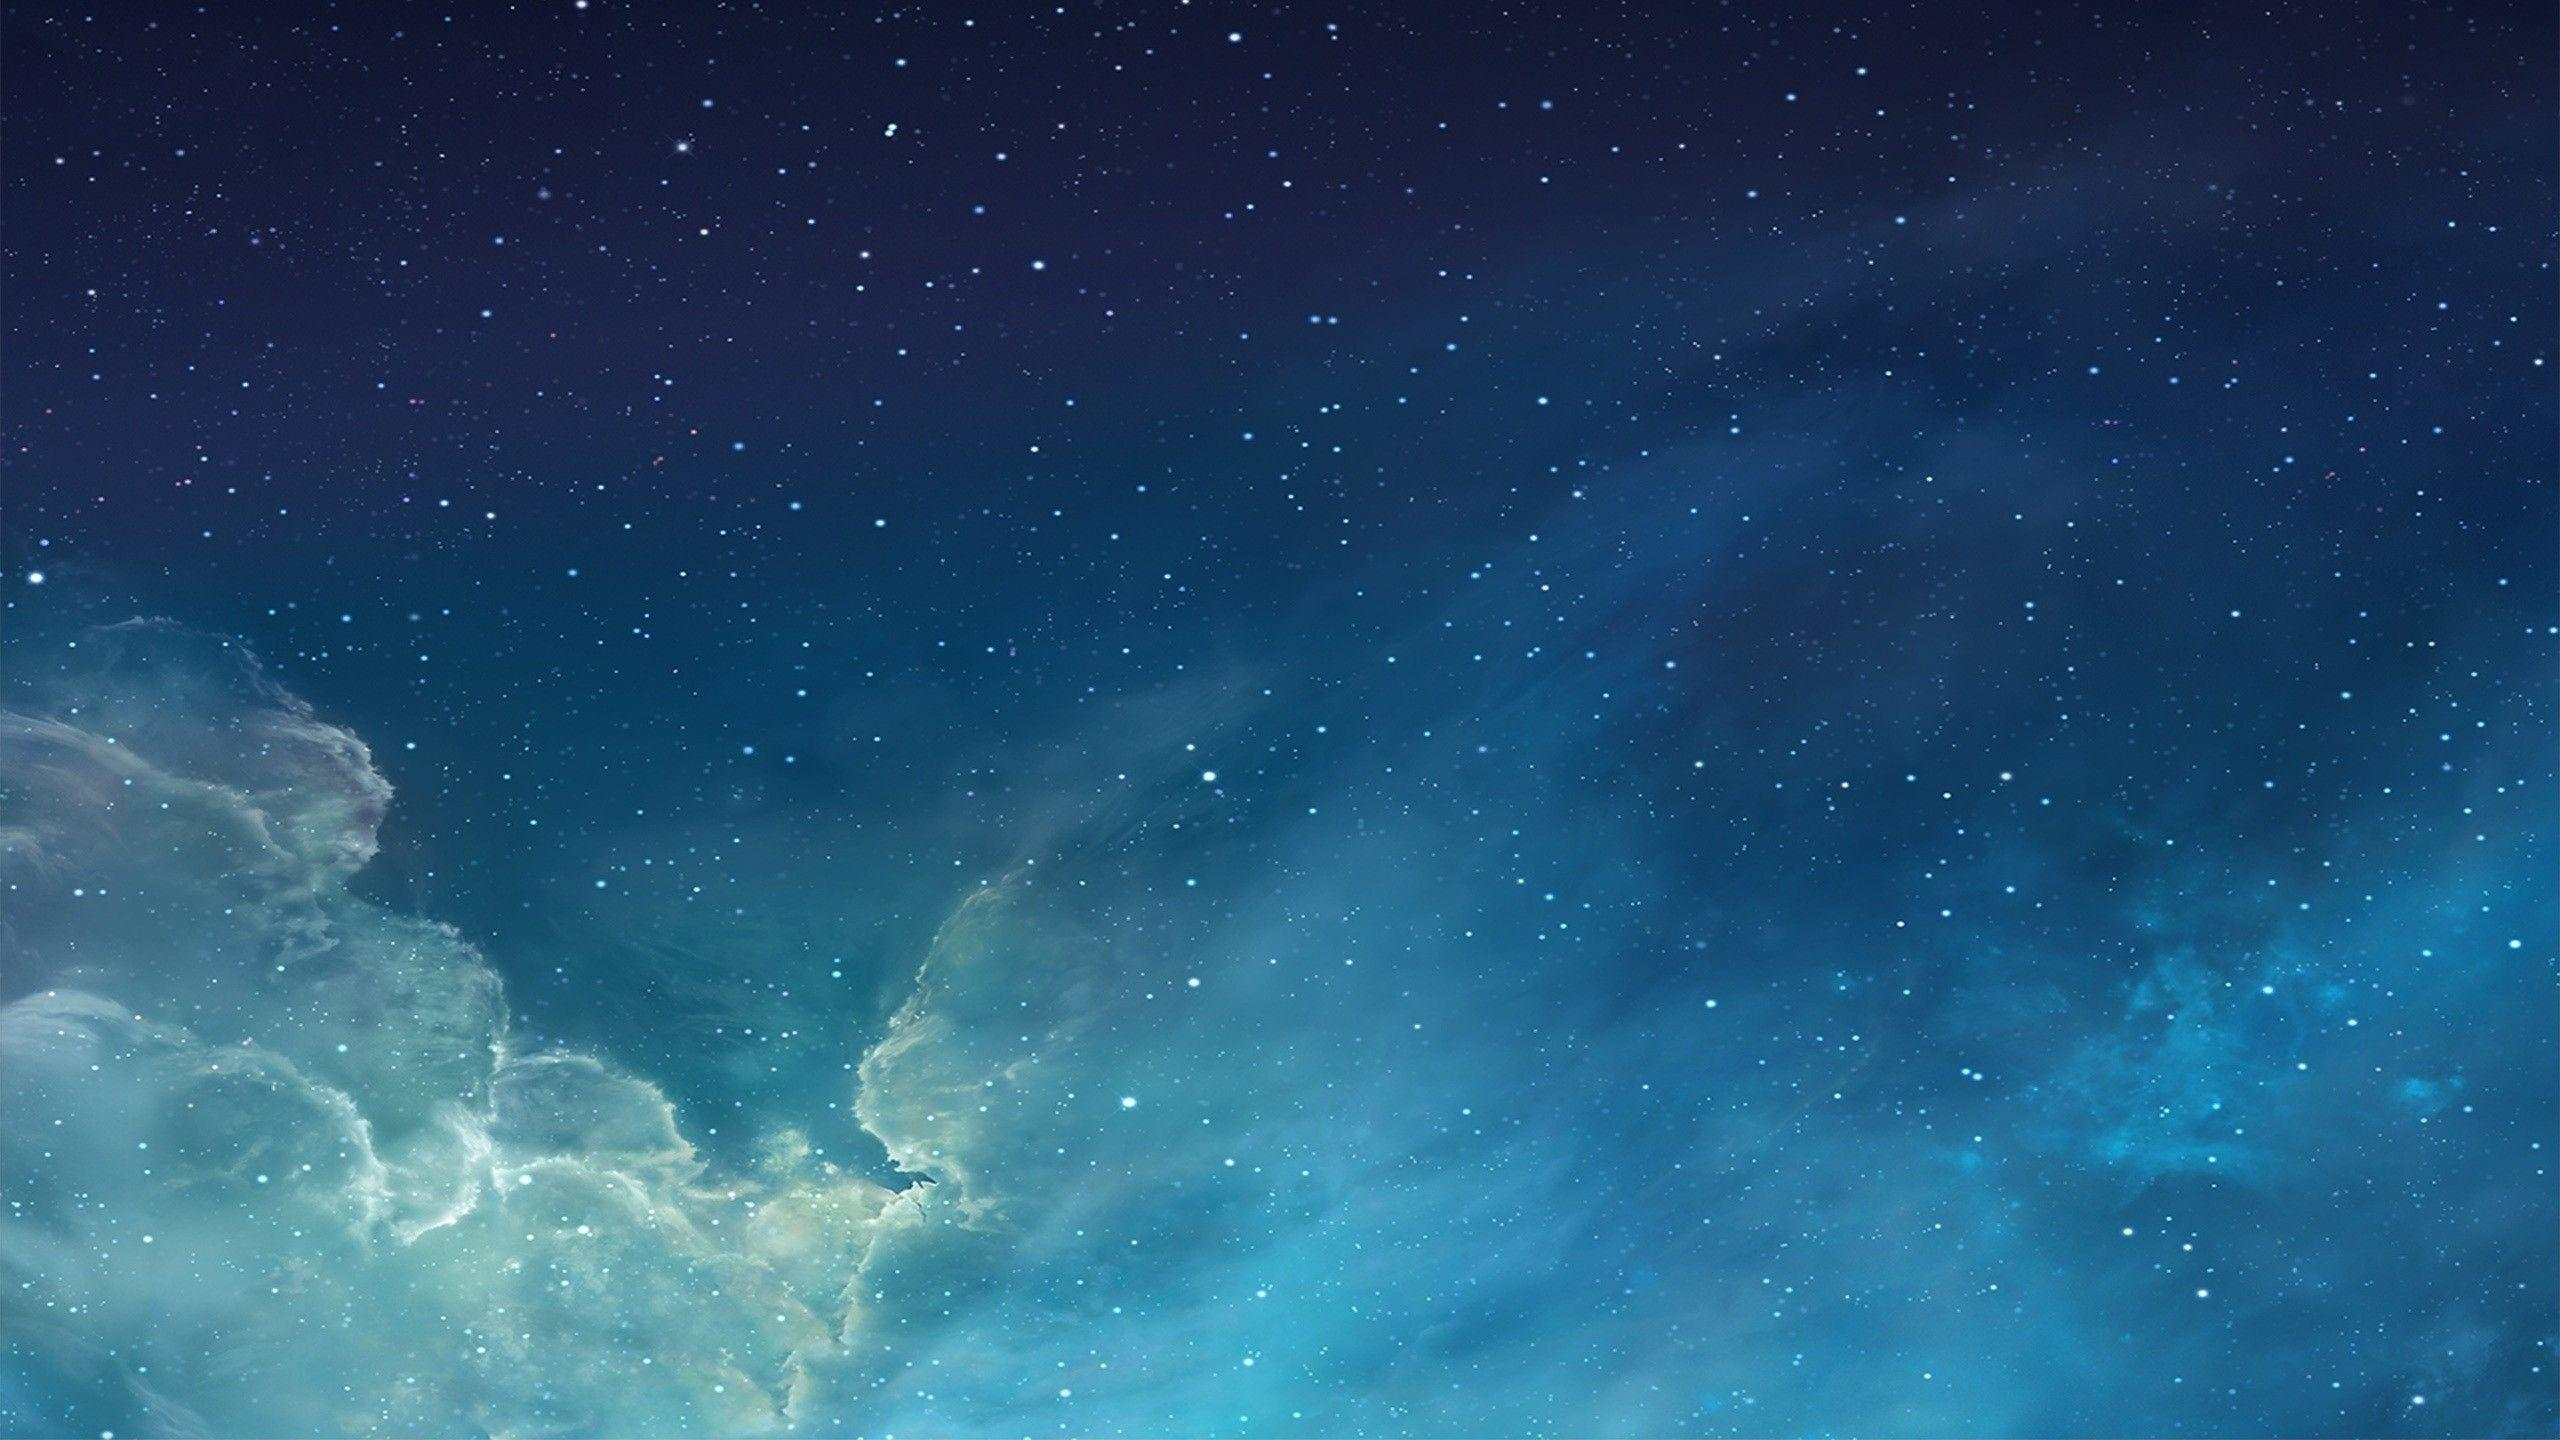 Star Wallpapers – Star Wallpapers Collection for PC & Mac, Tablet ...